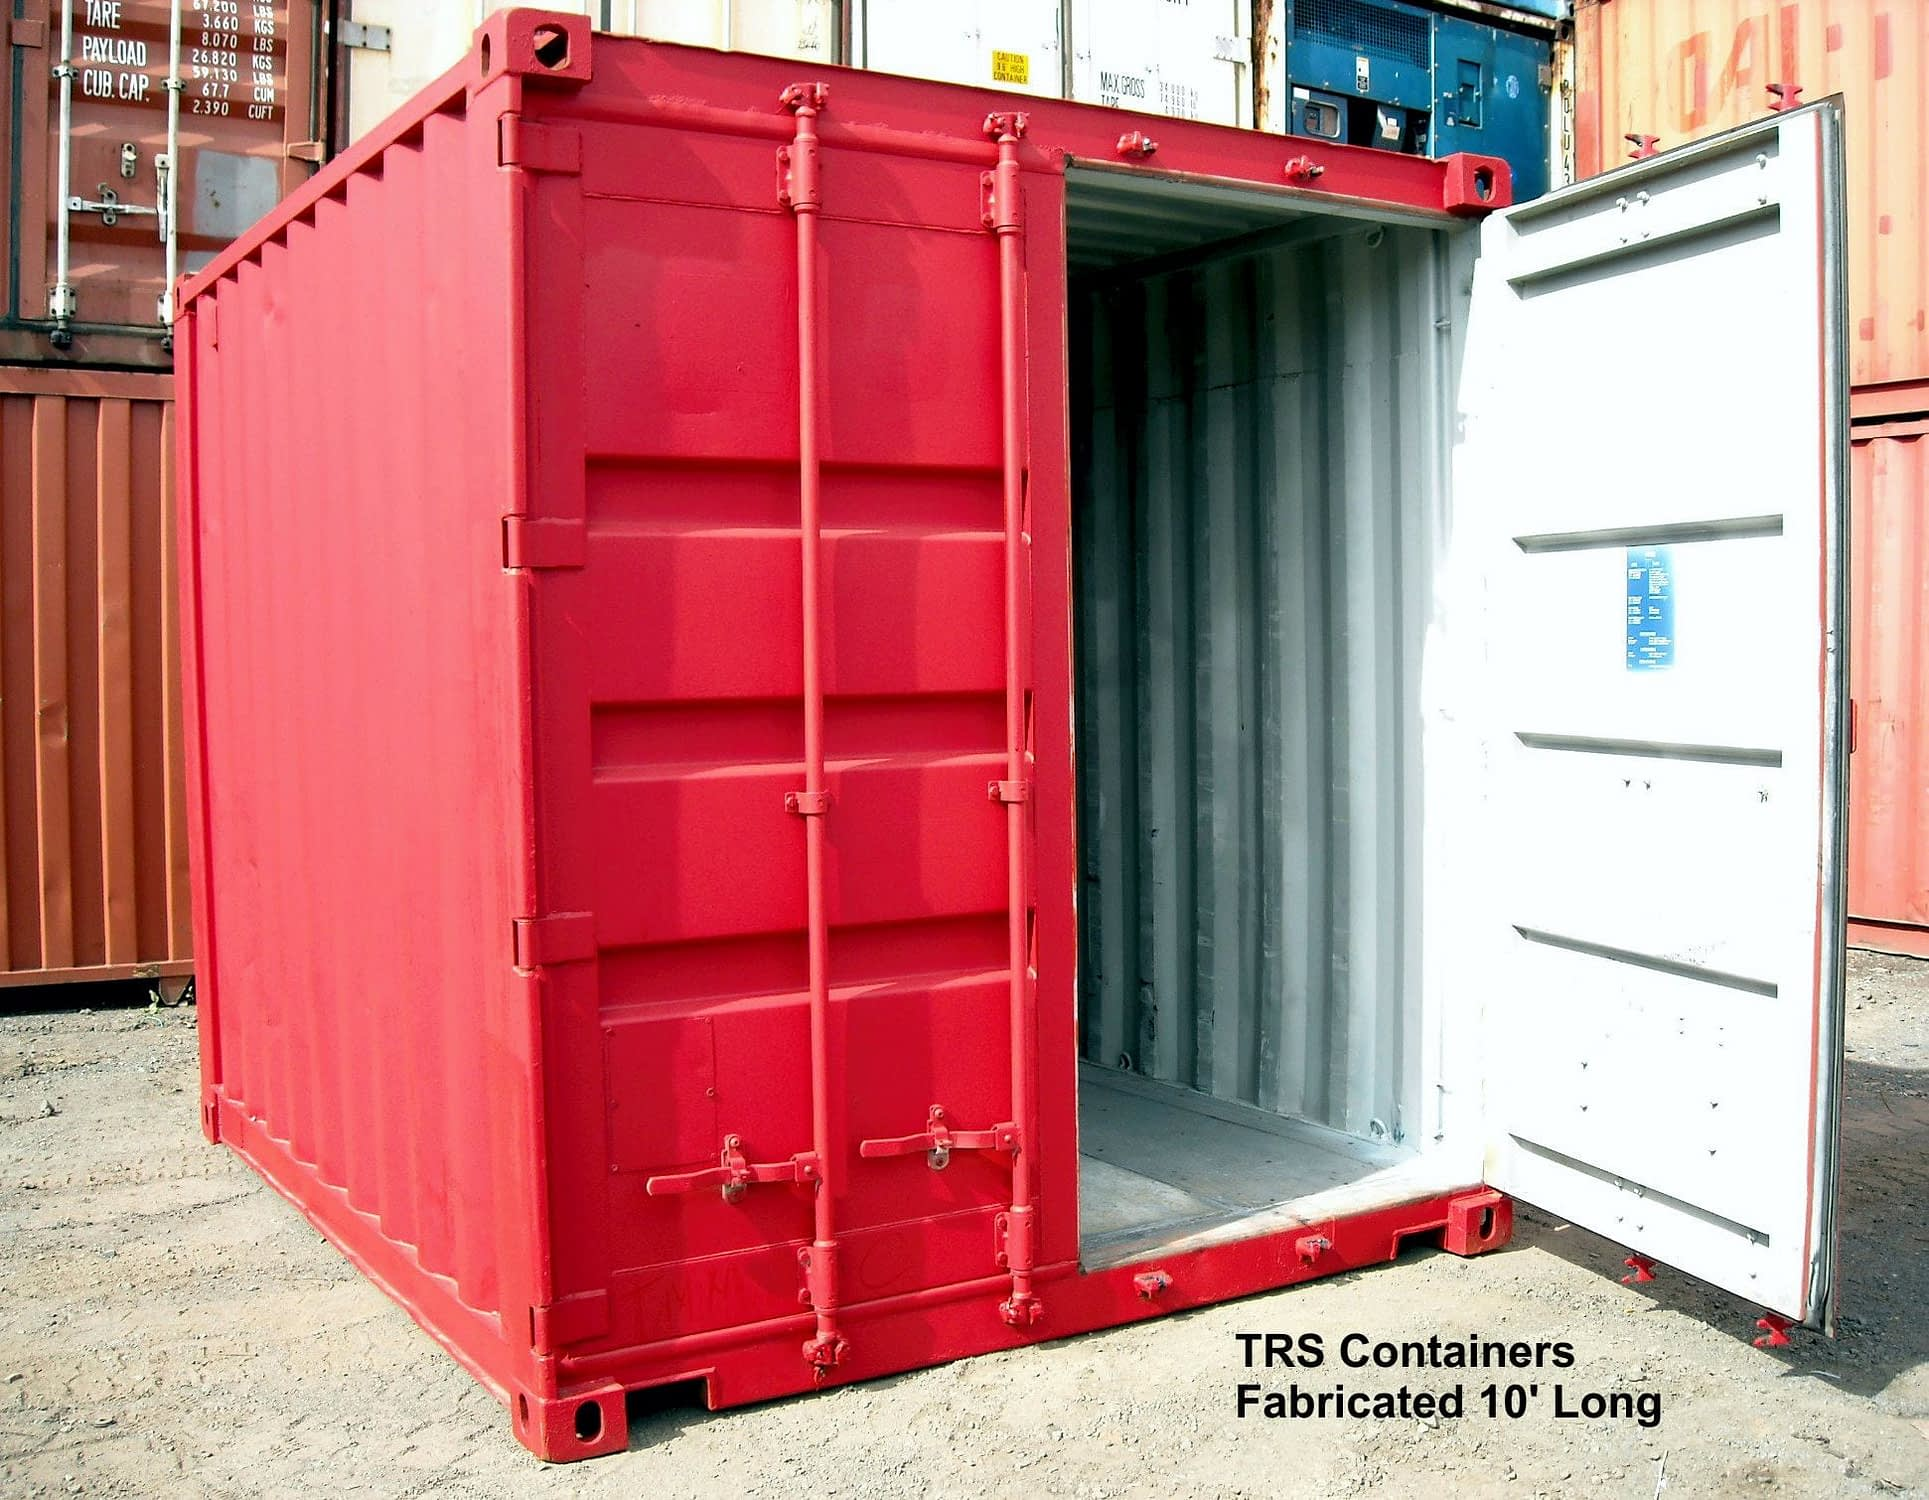 TRS Containers sells, rents and modifies 10 foot long steel containers for the construction industry.